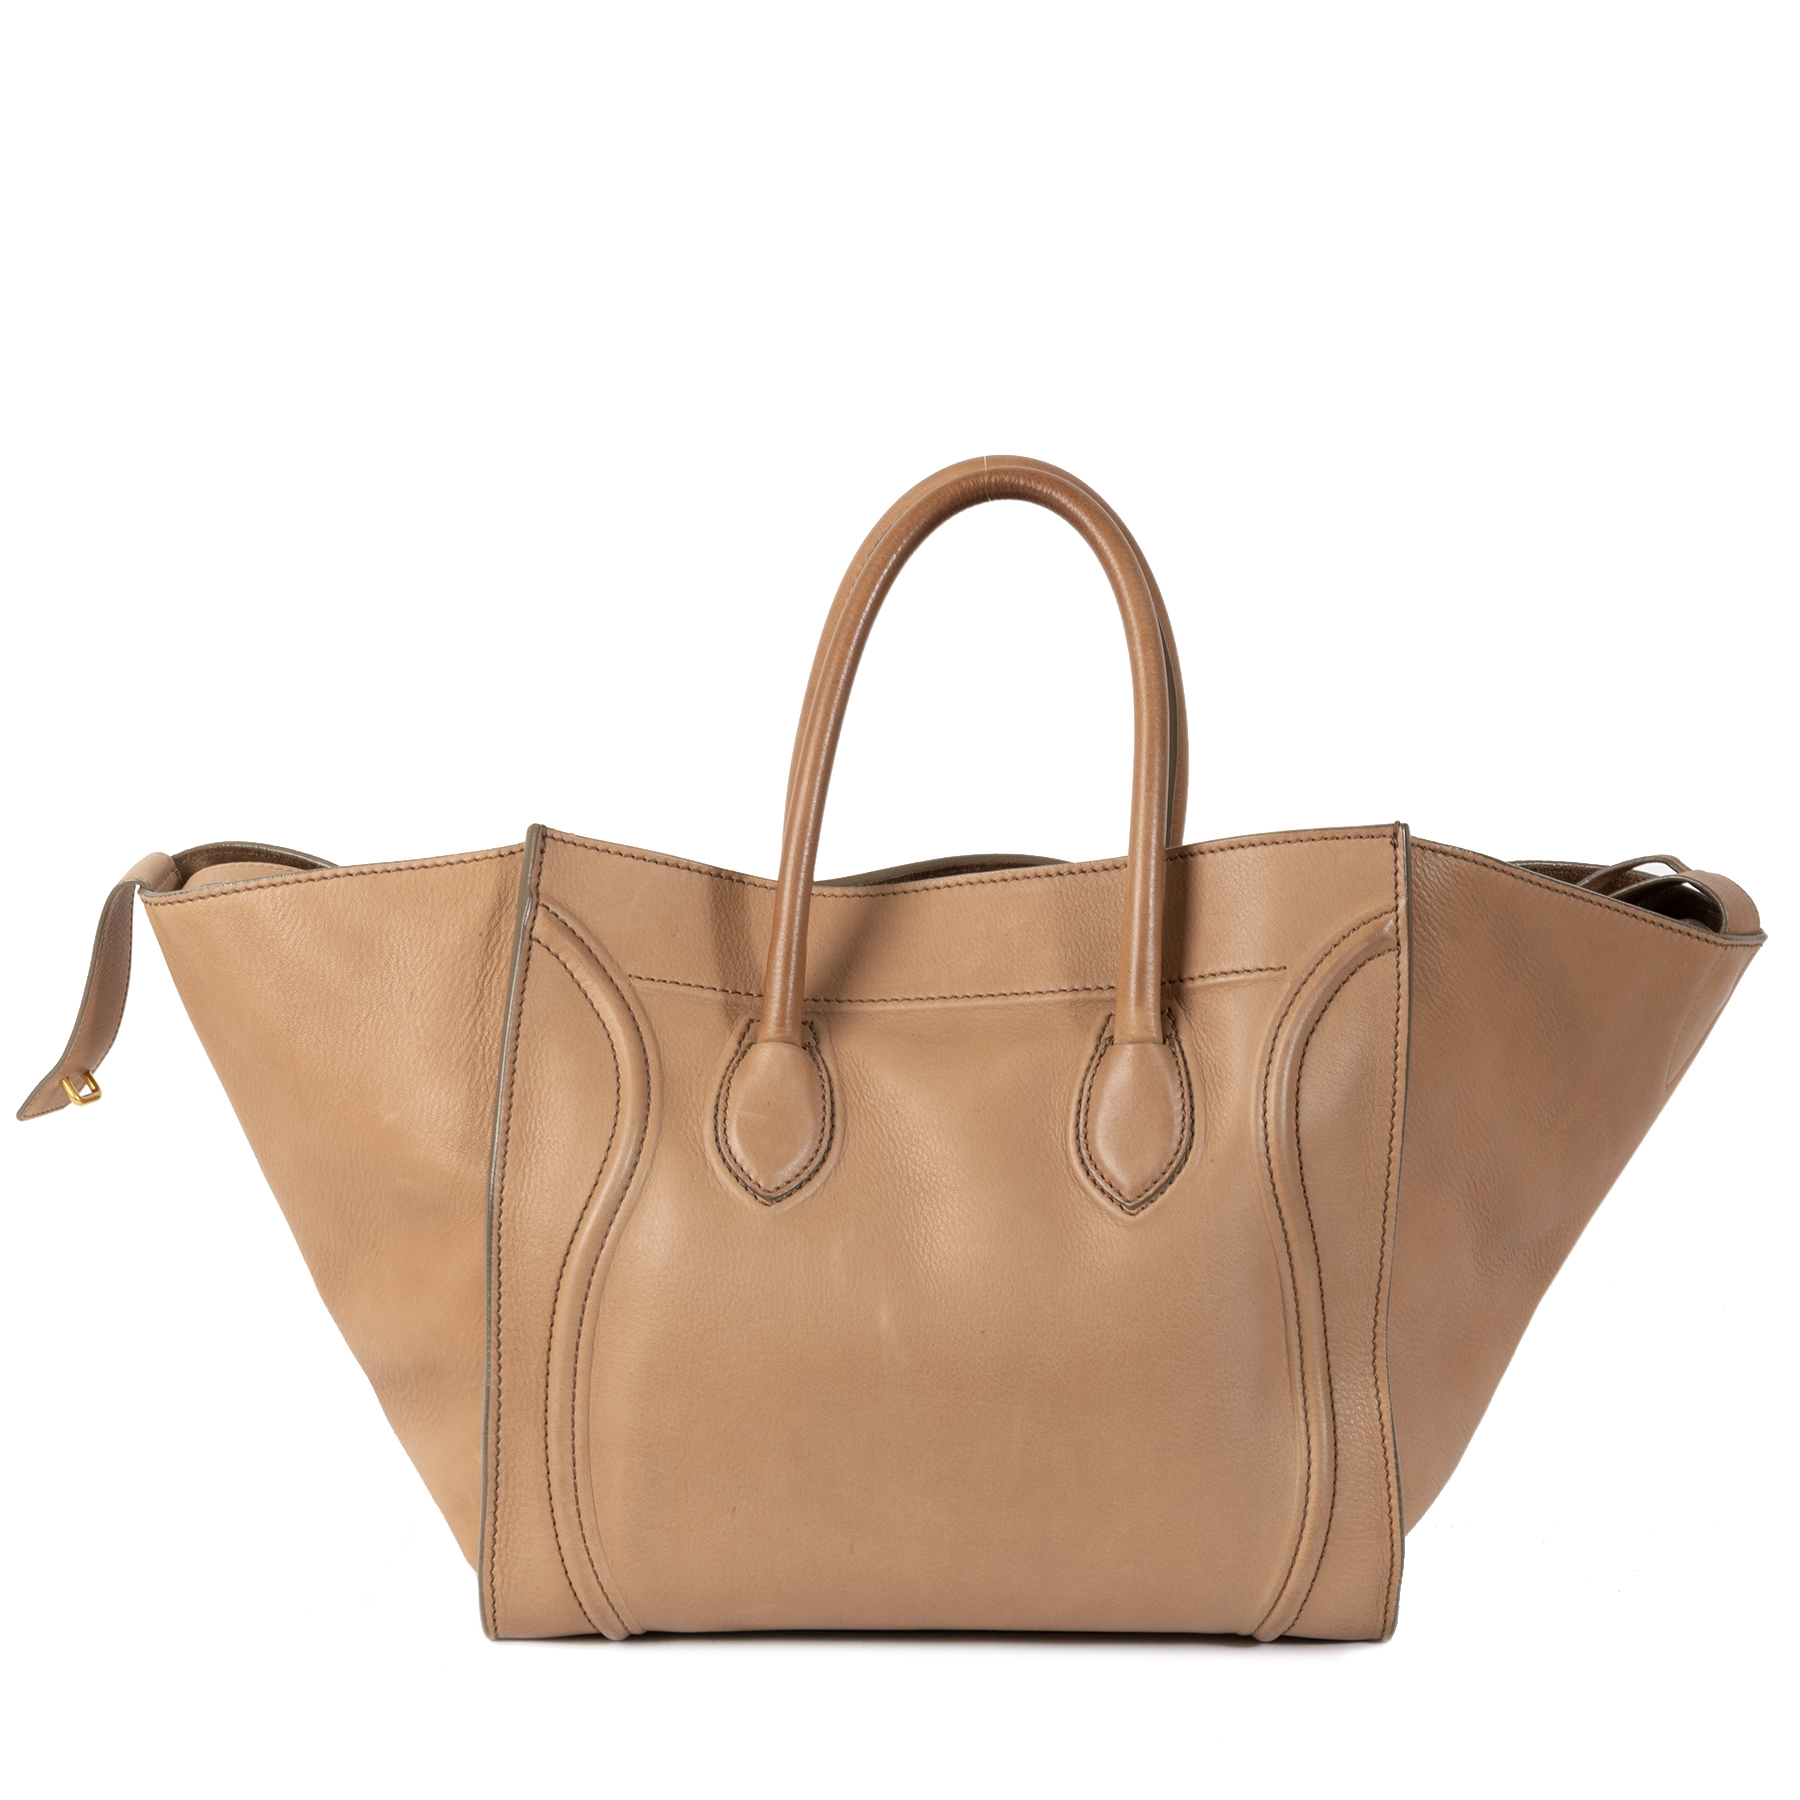 Authentic second-hand vintage Céline Luggage Phantom Tote Bag buy online webshop LabelLOV